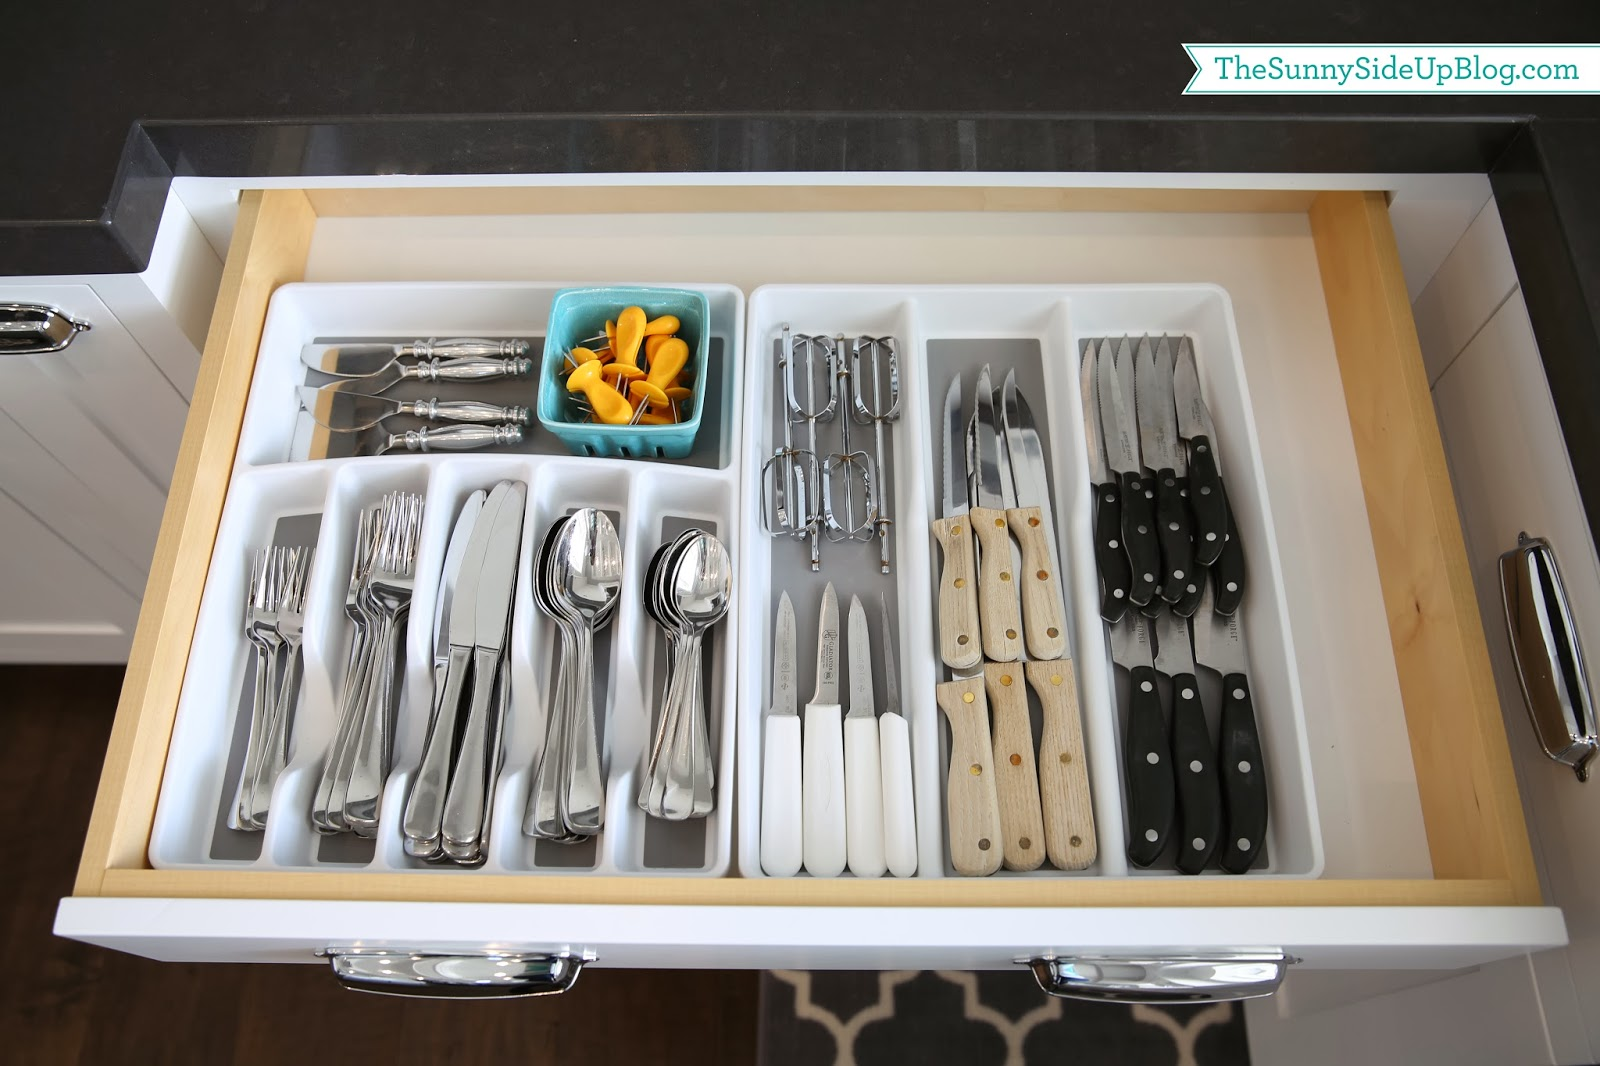 Organized silverware the sunny side up blog - How to organize kitchen drawers and cabinets ...